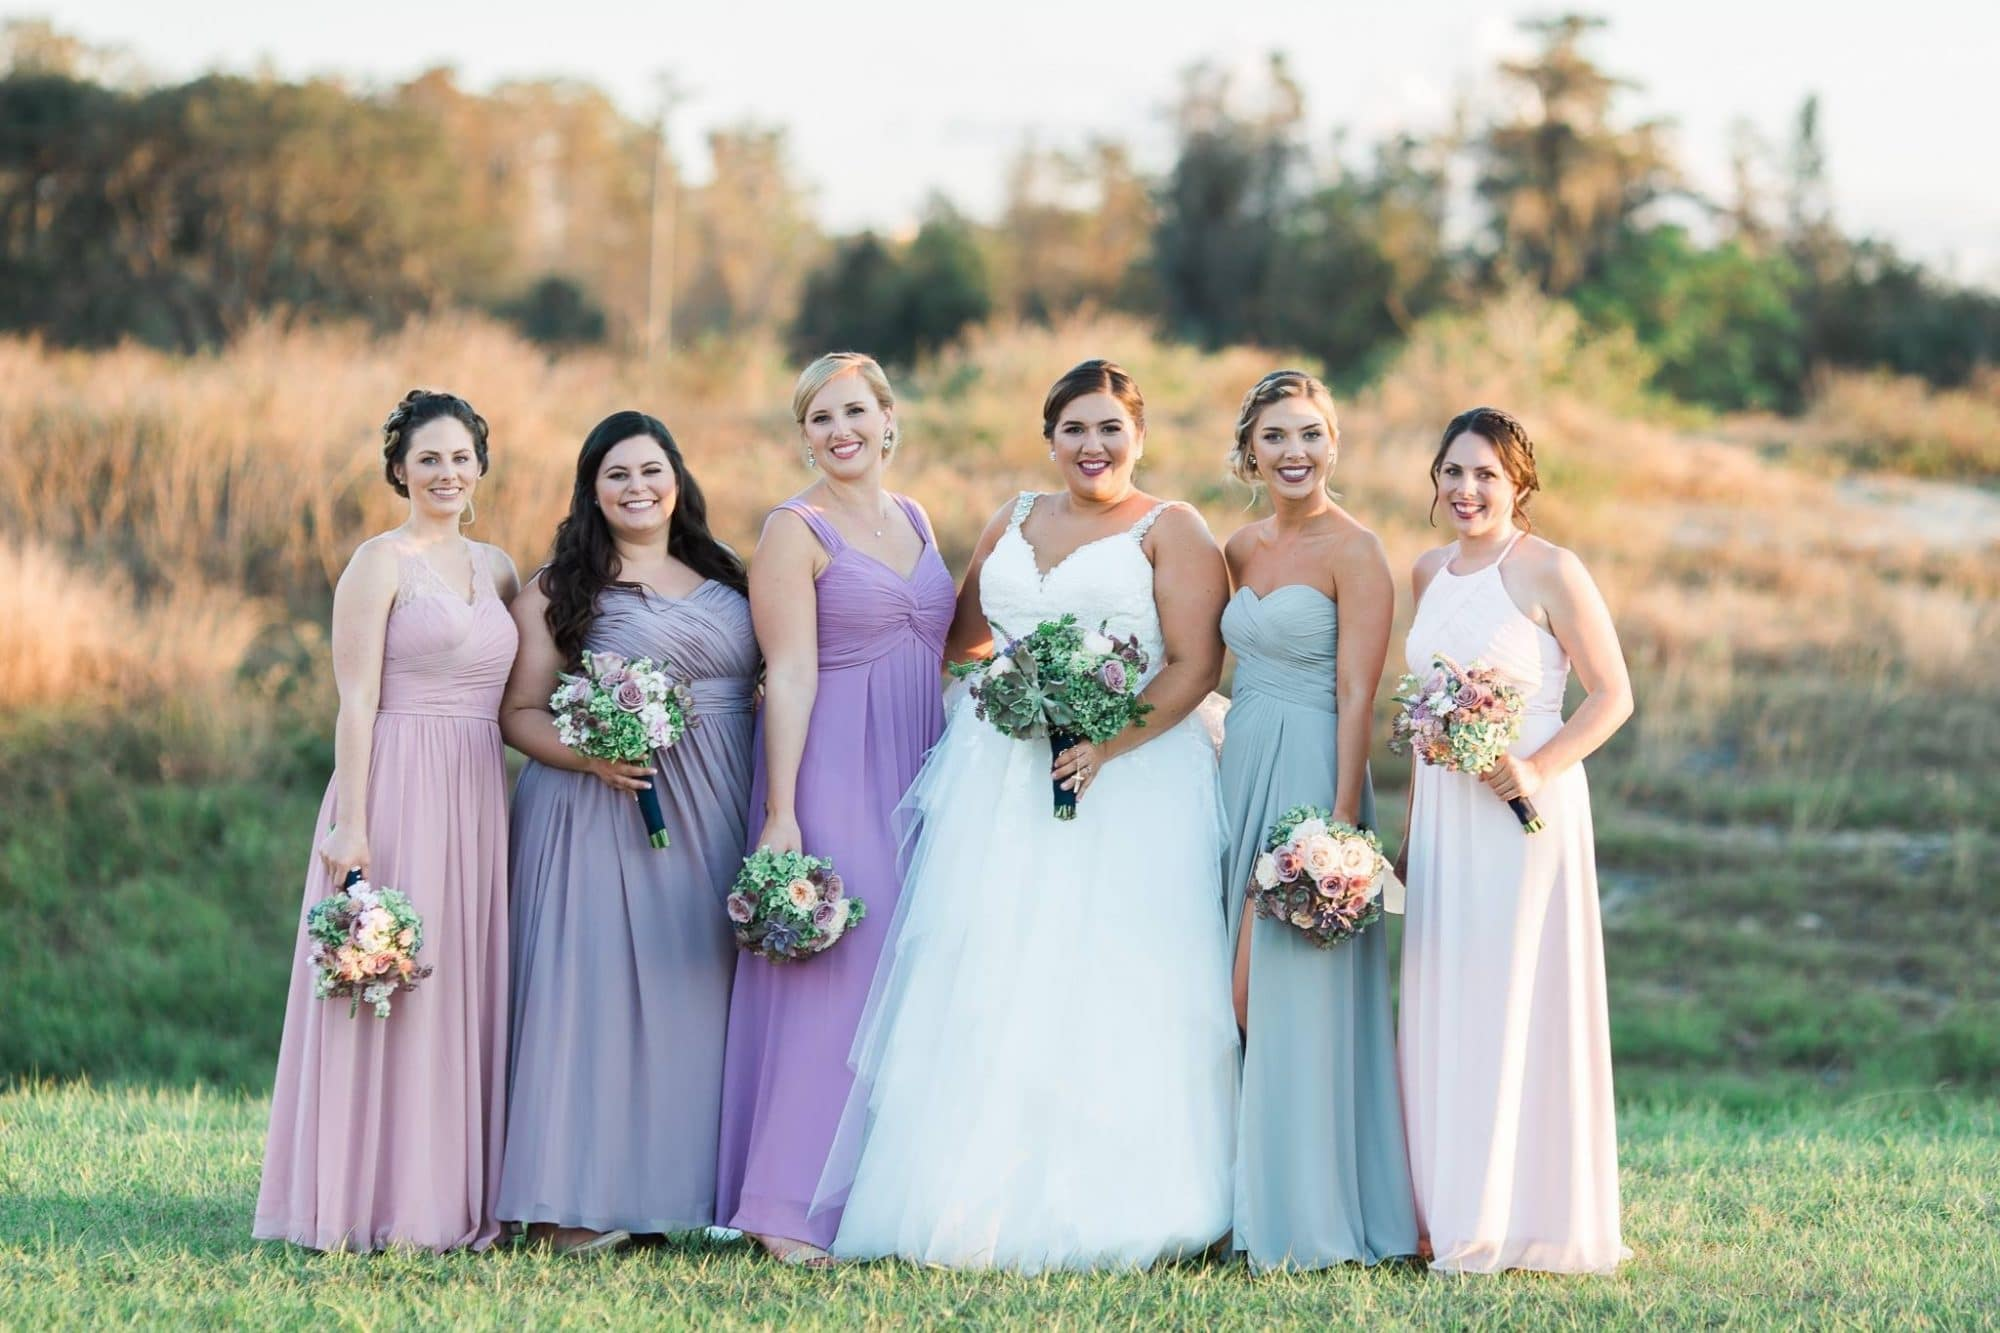 Bride surrounded by bridesmaids in different colored dresses